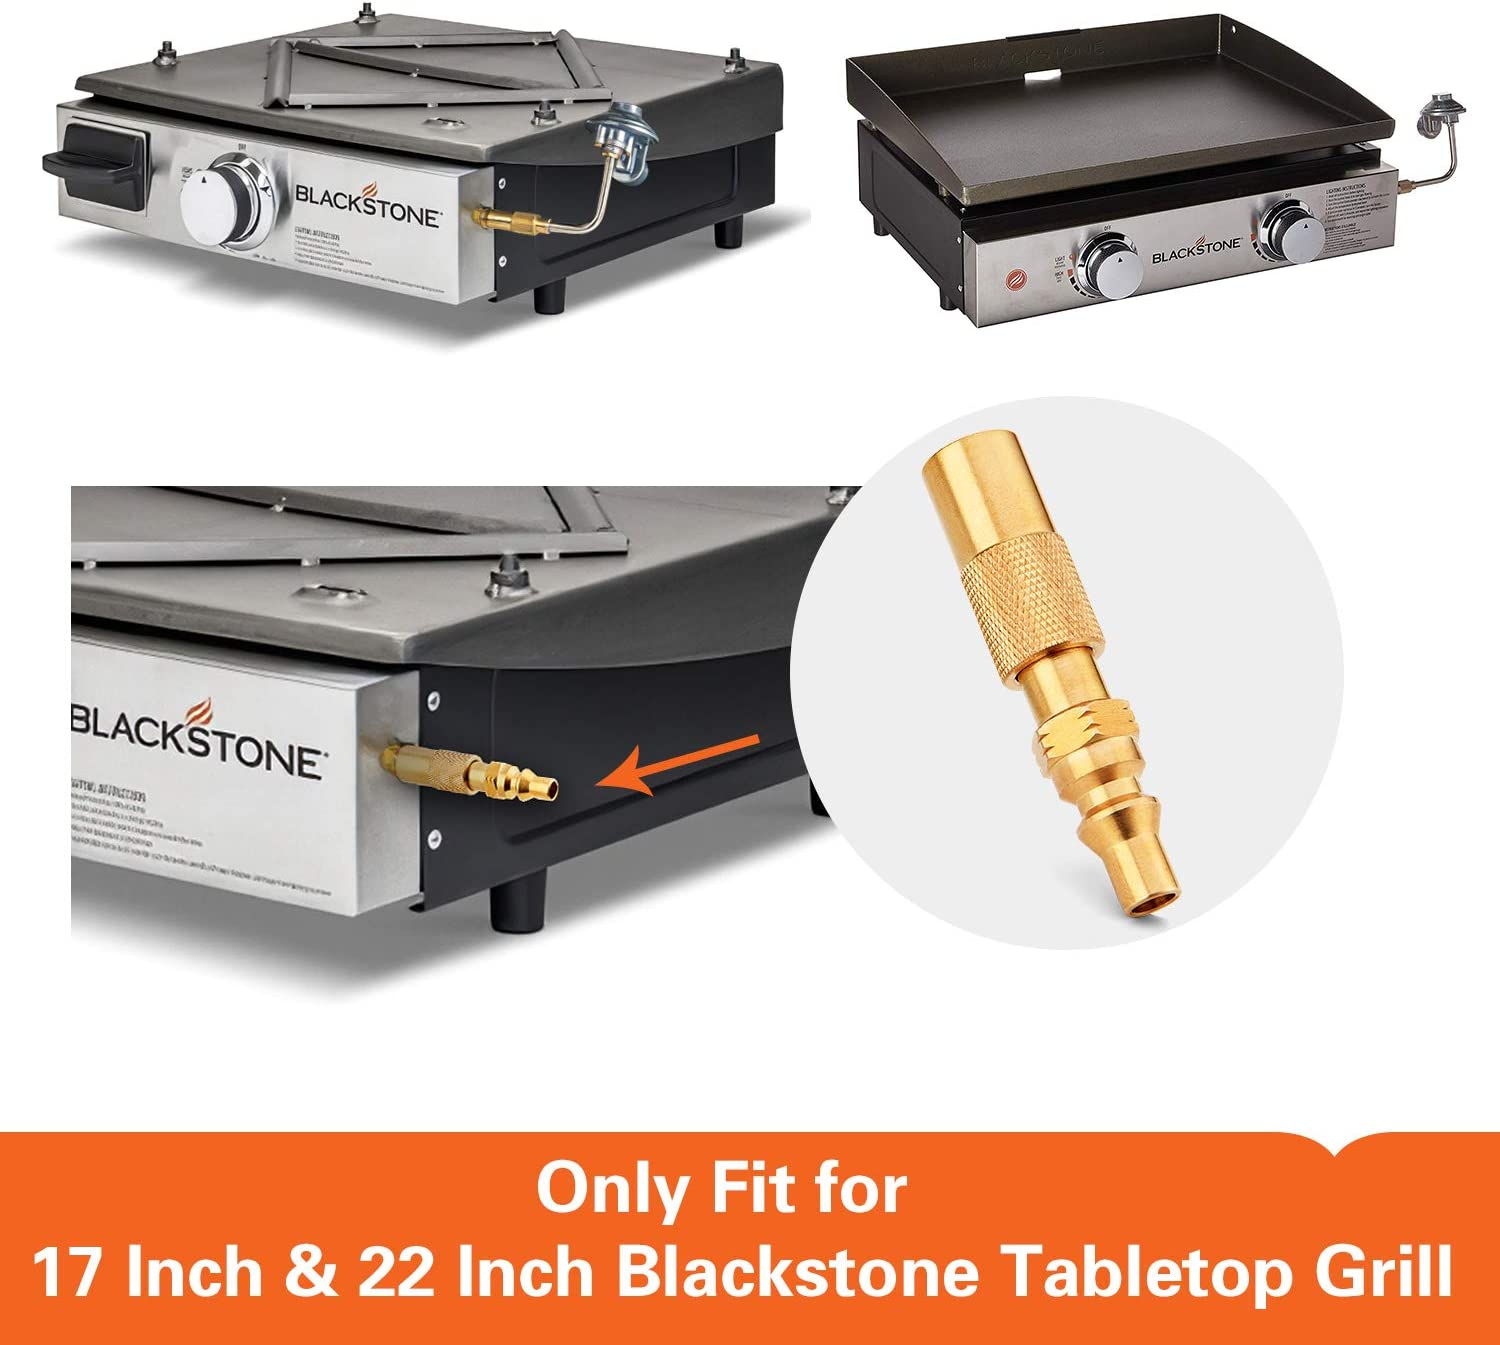 17 Inch and 22 Inch Portable Gas Griddle Kohree 1//4 Inch RV Low Pressure Quick Connect//Disconnect Conversion Fitting Adapter for Blackstone Tabletop Grill